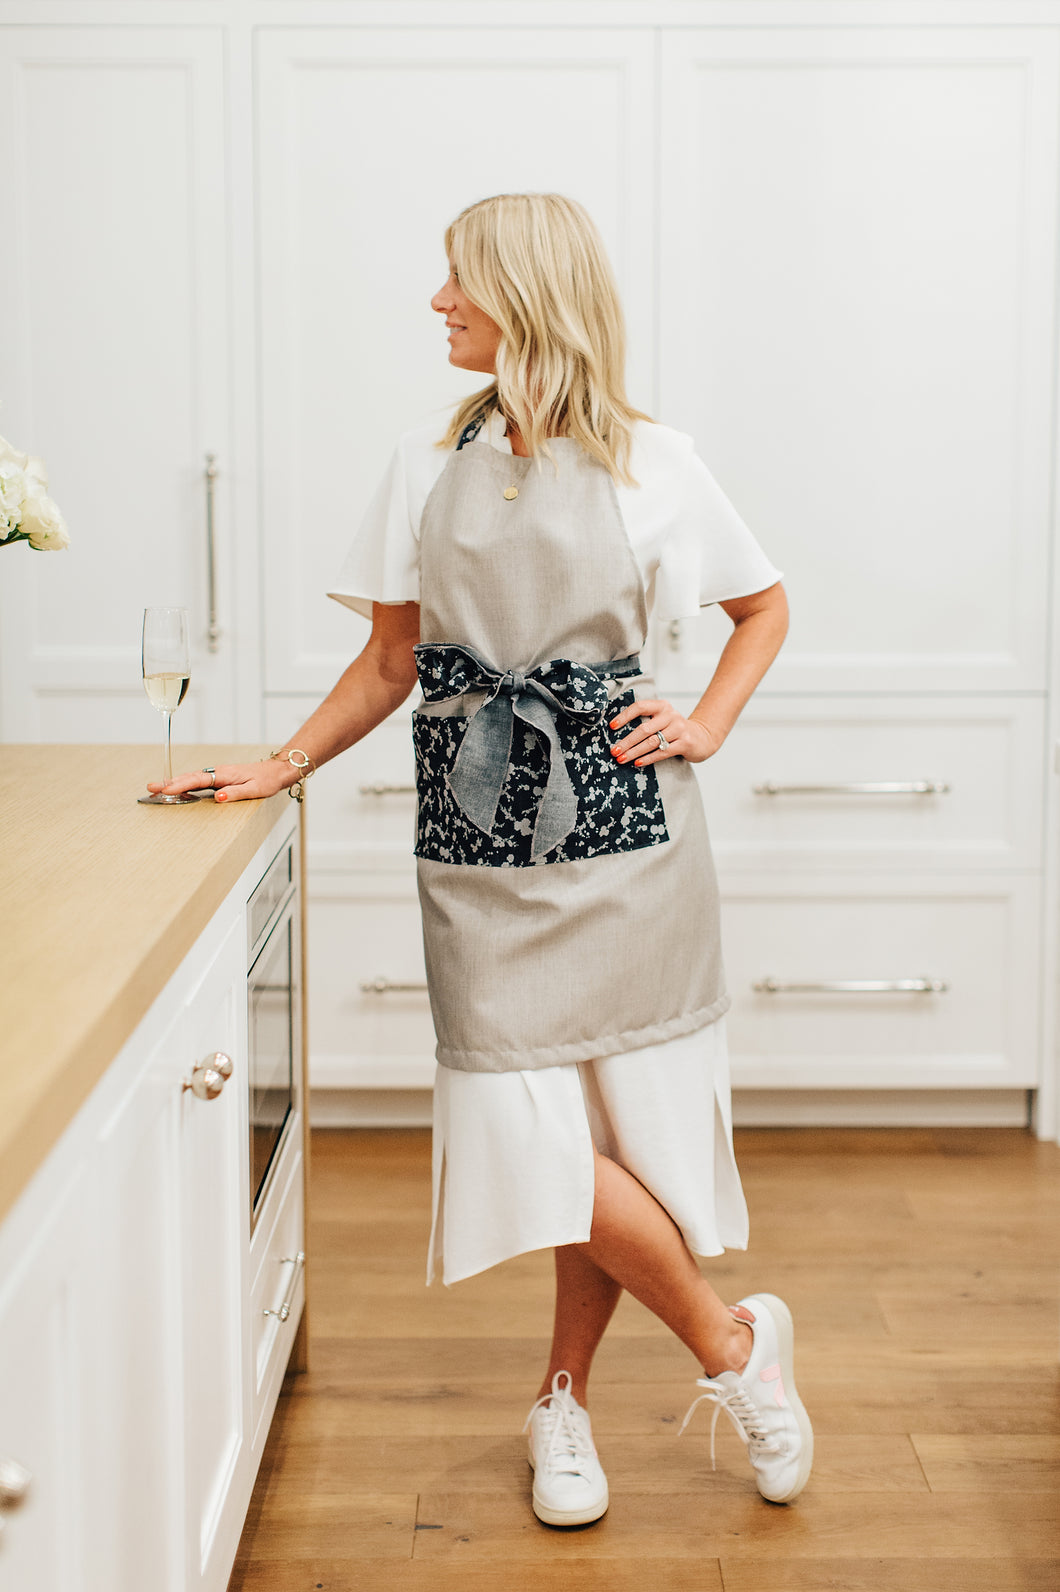 The Stacy Girl Apron